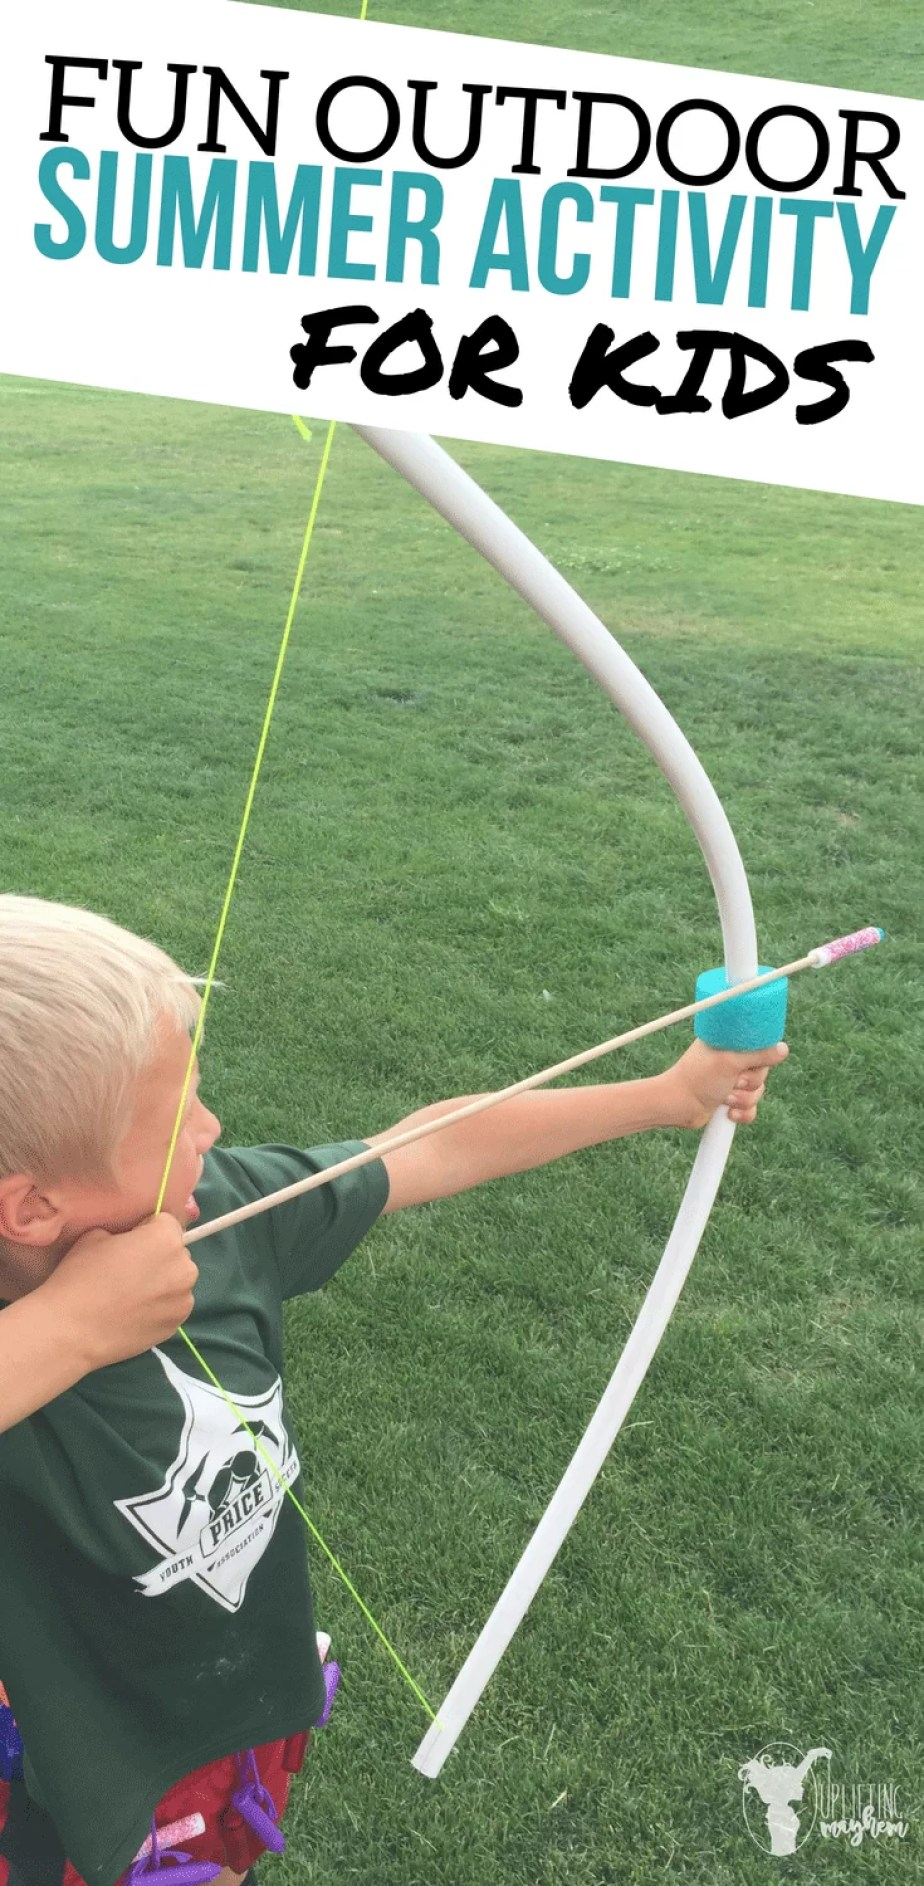 DIY PVC Bow and Arrow! Fun Outdoor Summer Activity for boys and girls.